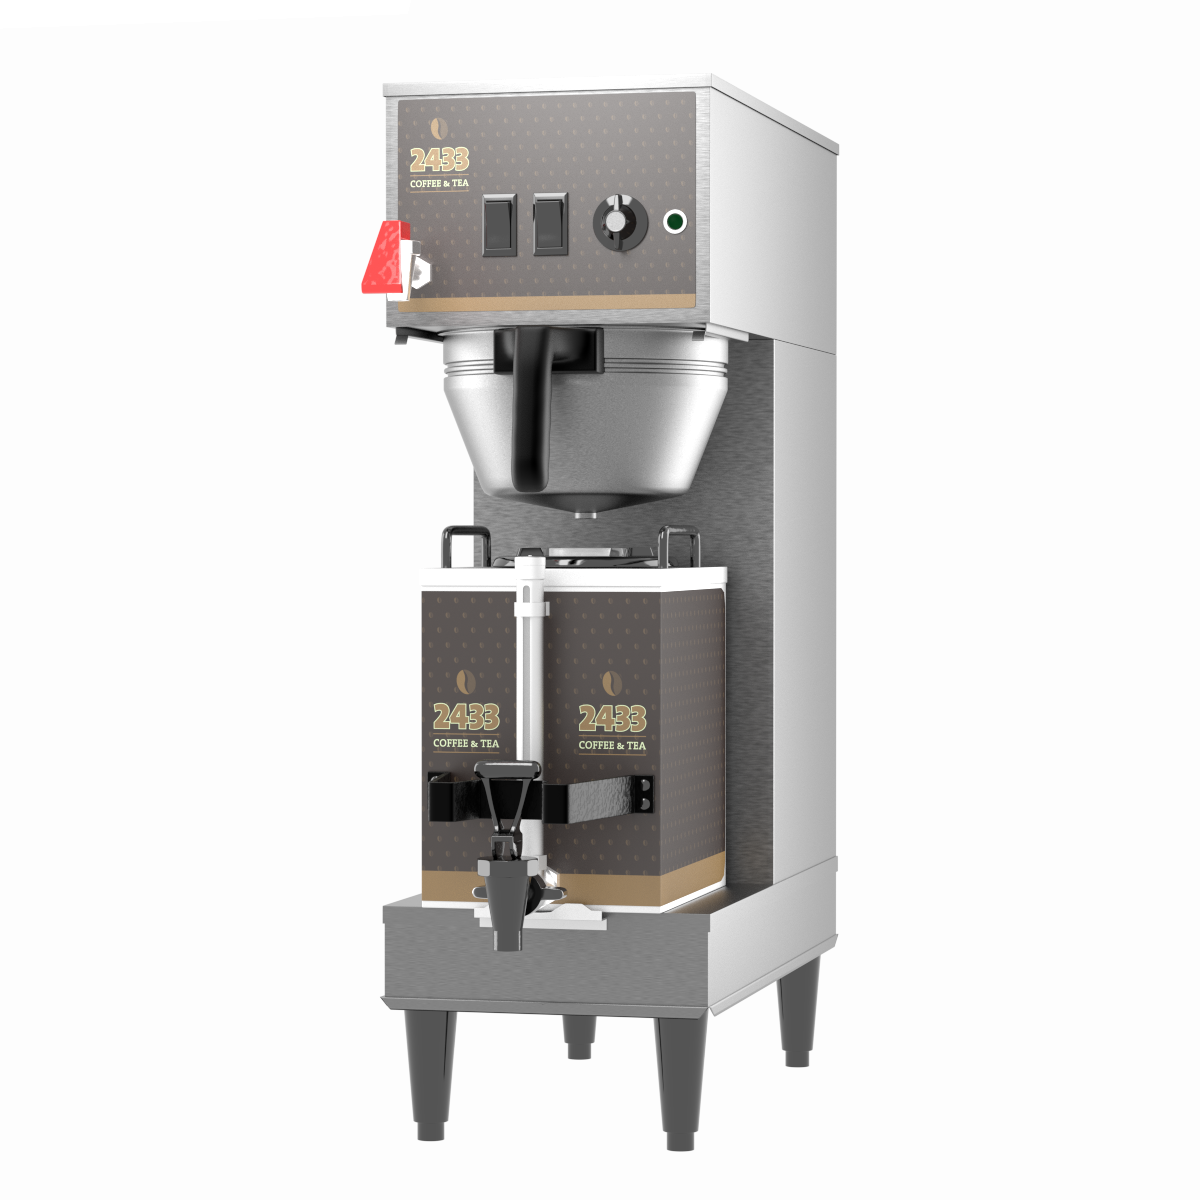 Equipment Graphics - Custom printed equipment graphics are an essential part of any Point-Of-Purchase coffee program. Equipment includes airpots, urns, servers and brewers.